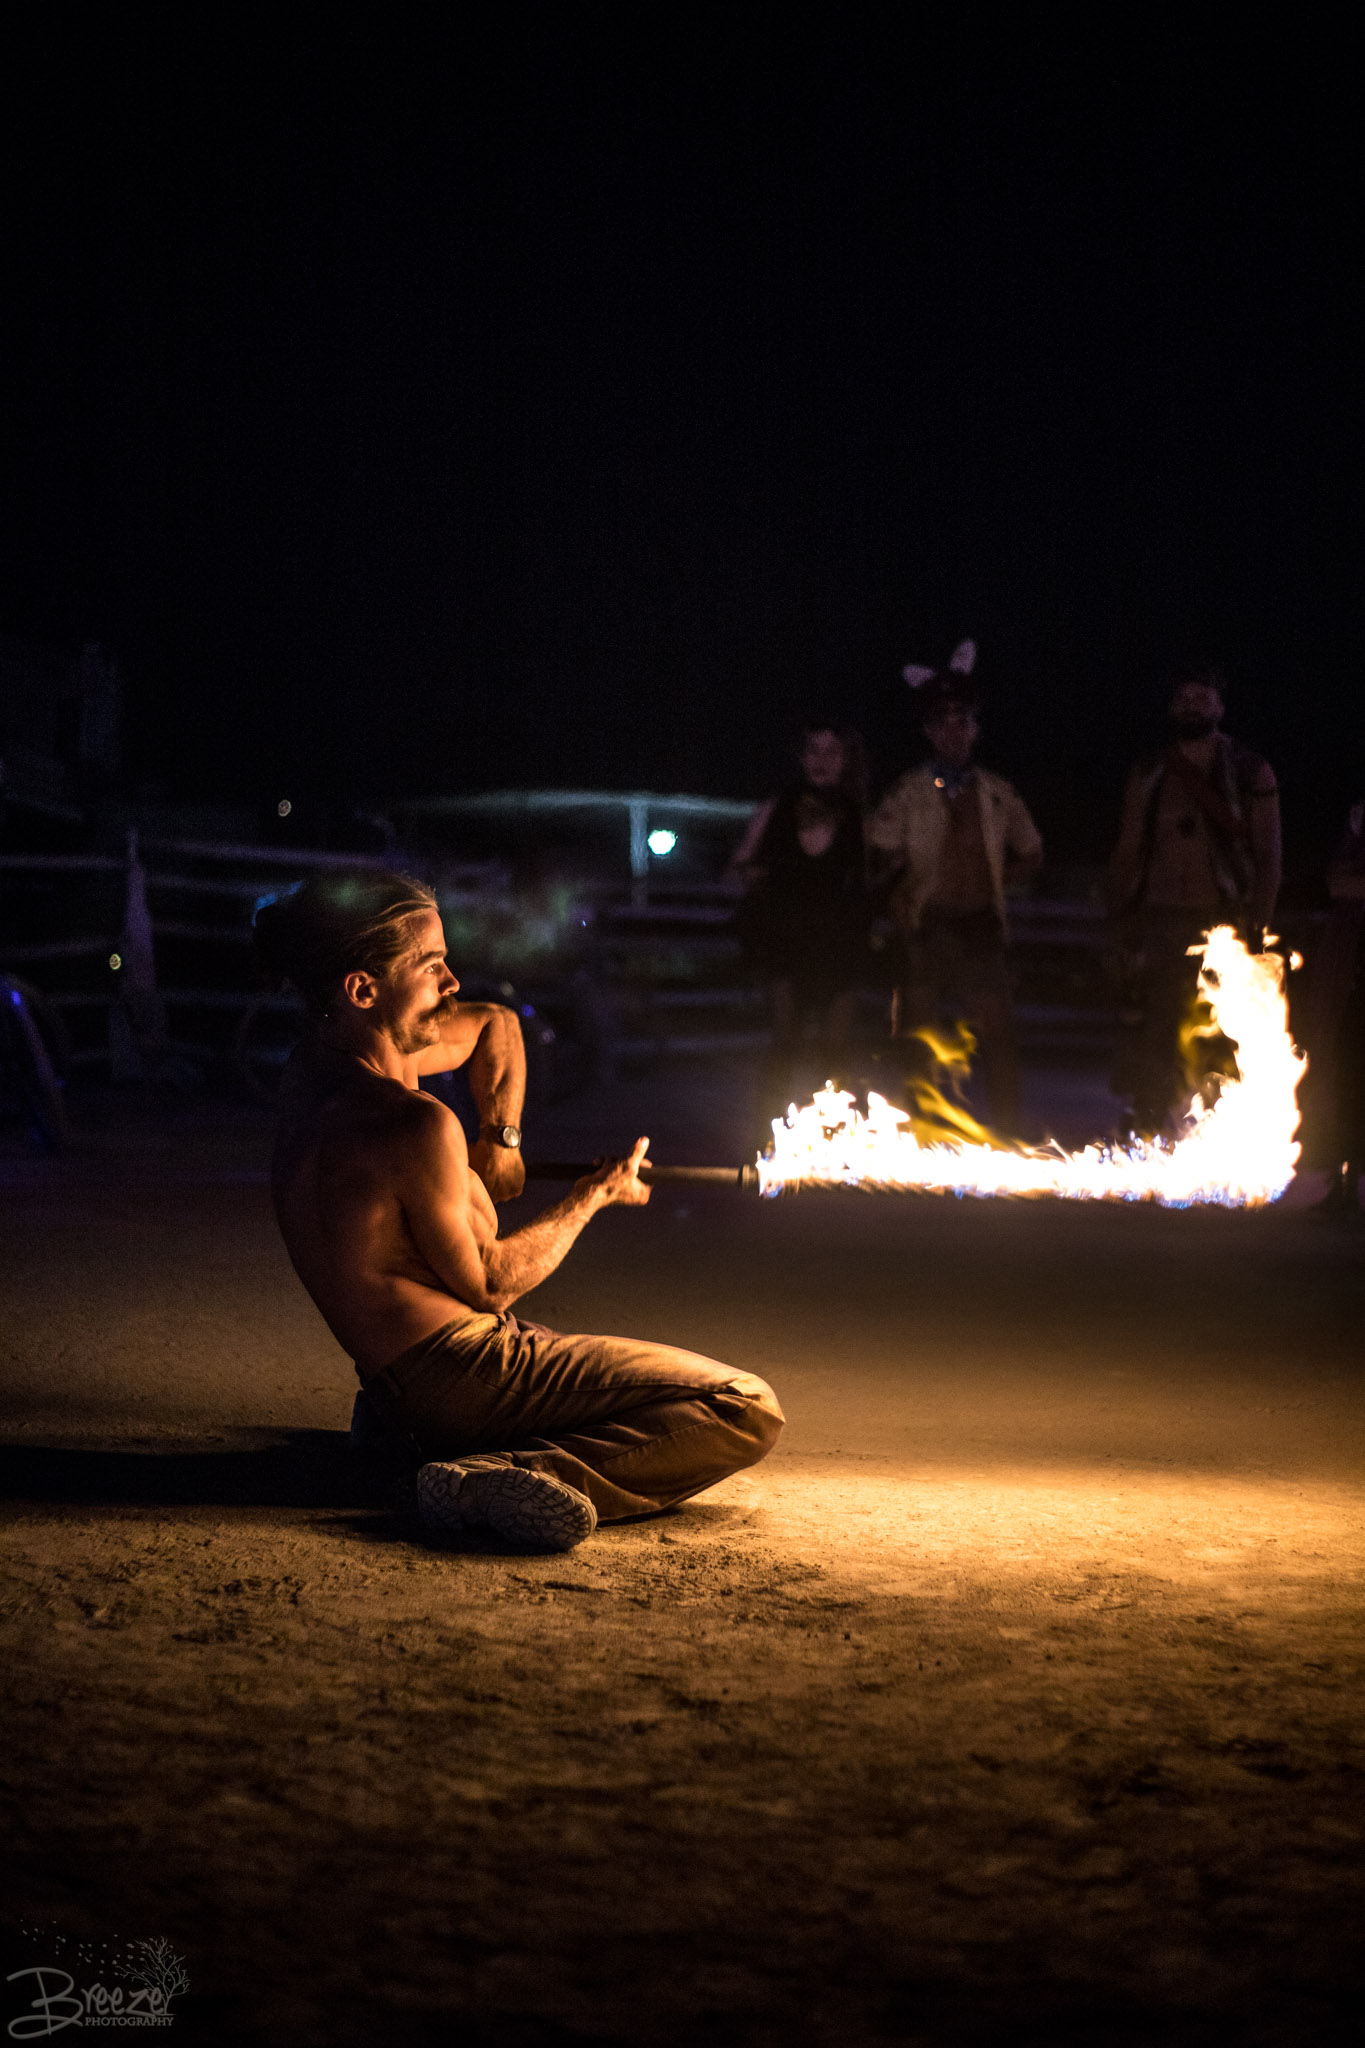 Brie'Ana Breeze Photography & Media - Burning Man 2018-2988.jpg